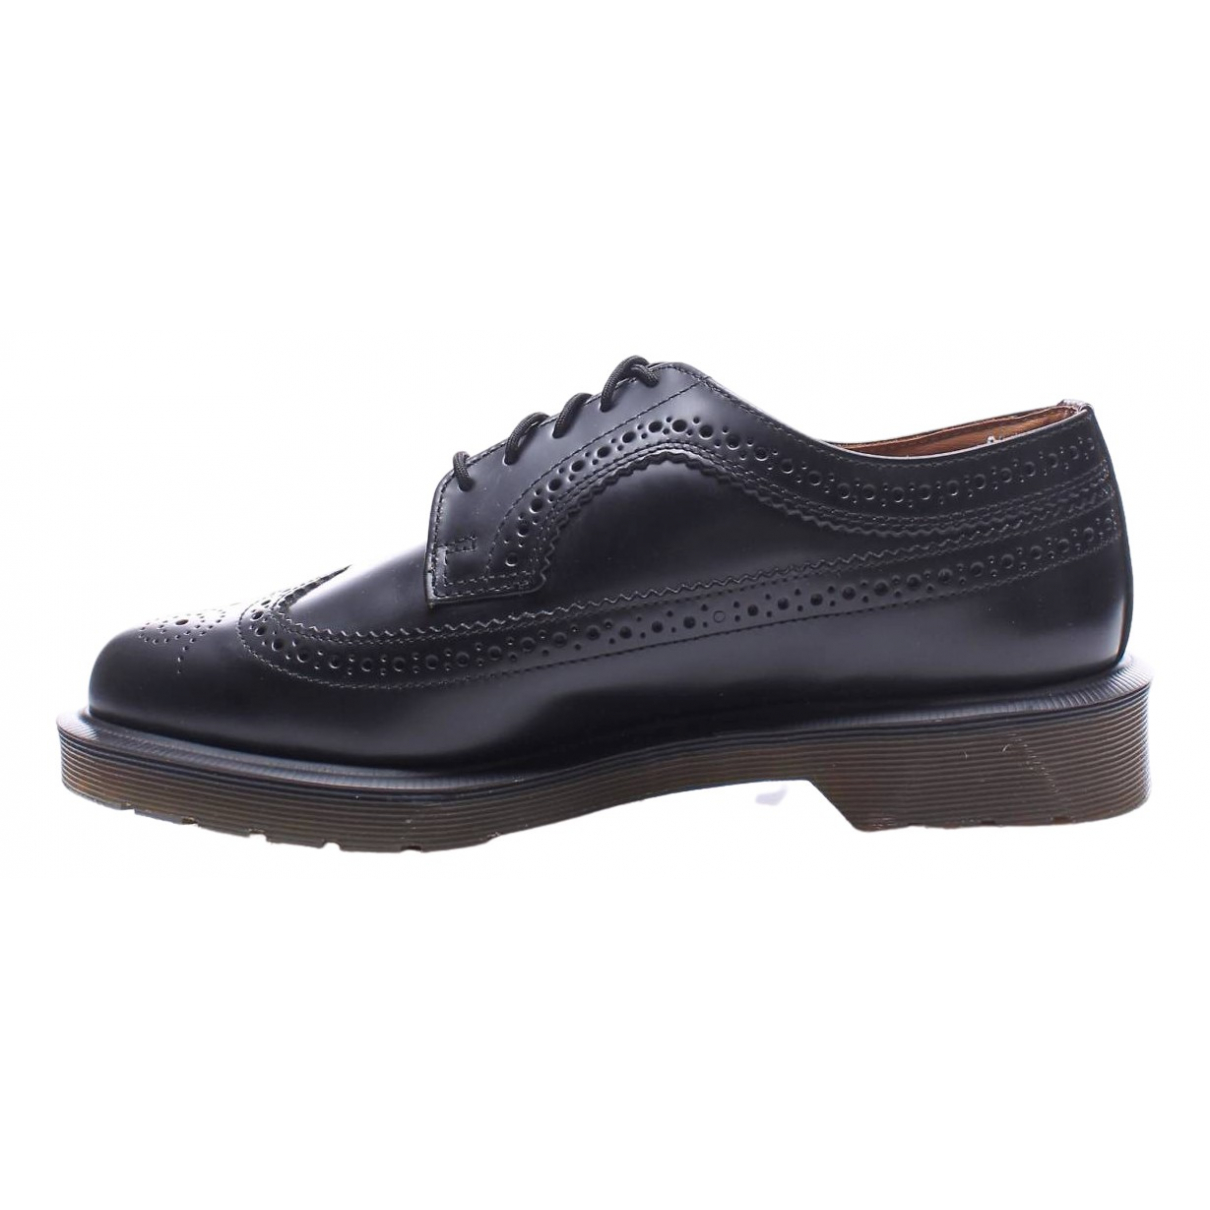 Dr. Martens \N Black Leather Flats for Men 41 EU